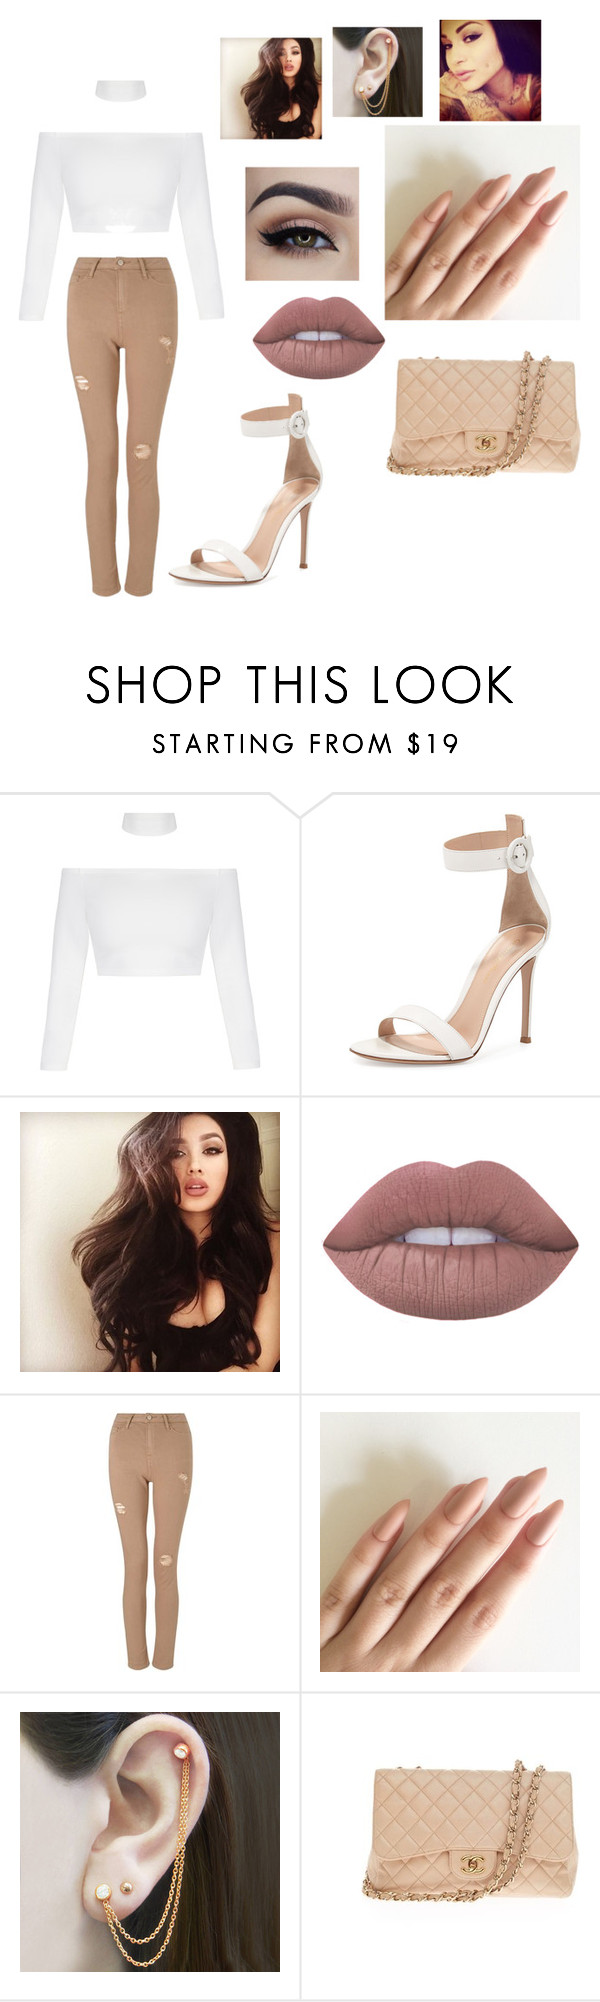 """i love this"" by marynkay ❤ liked on Polyvore featuring beauty, Gianvito Rossi, Lime Crime, Miss Selfridge, Embers Gemstone Jewellery and Chanel"